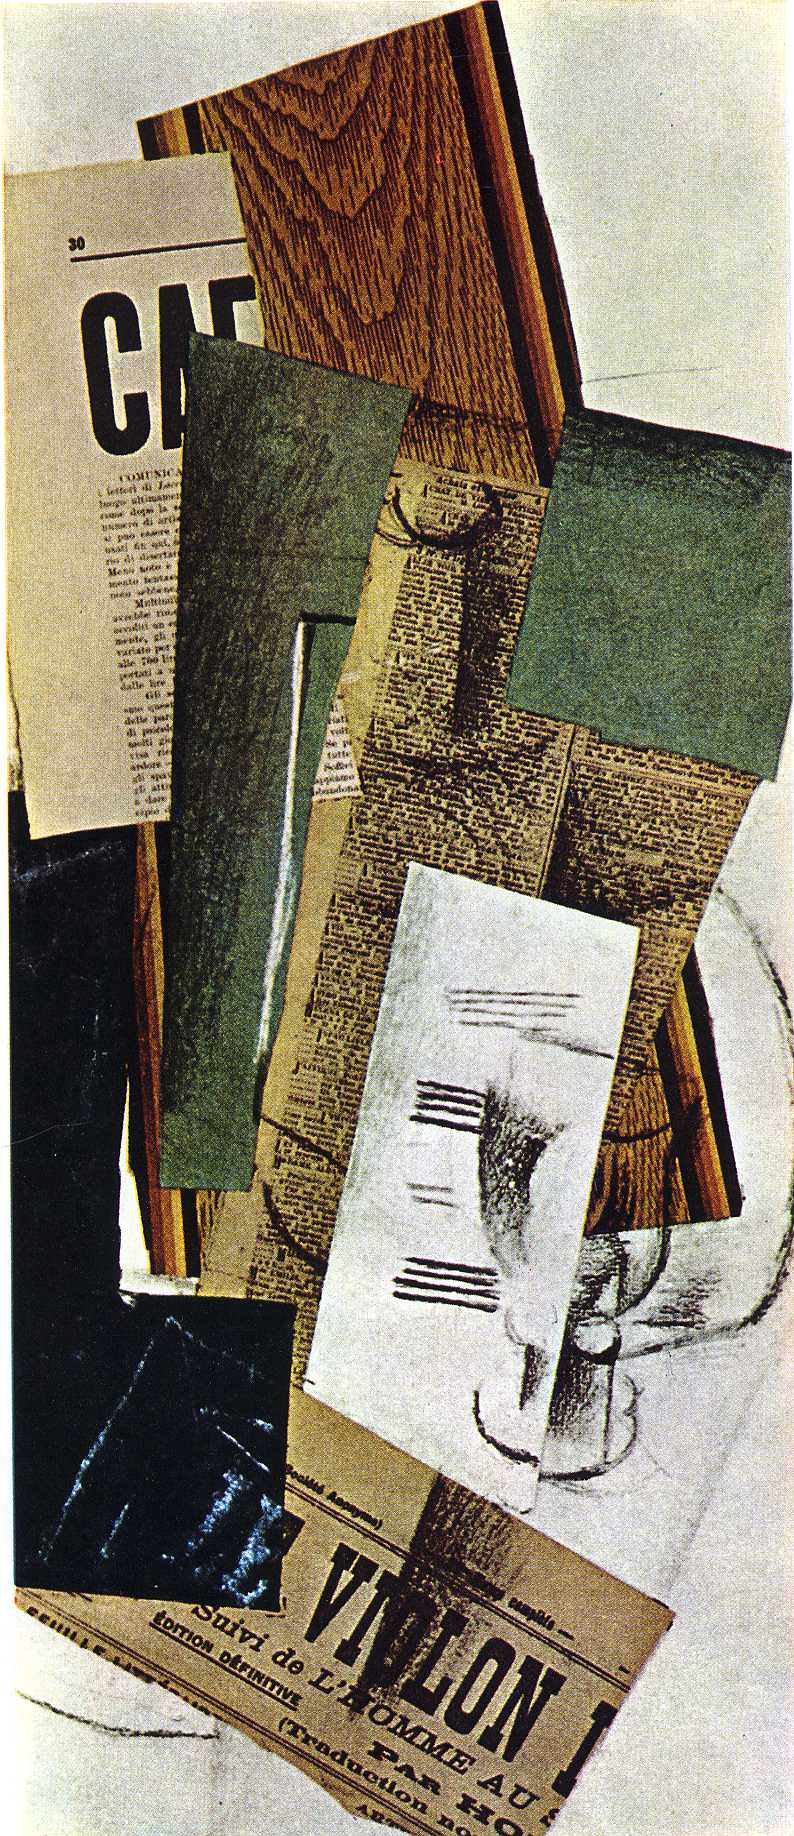 Top Glass Carafe and Newspapers, 1914 - Georges Braque - WikiArt.org OP79